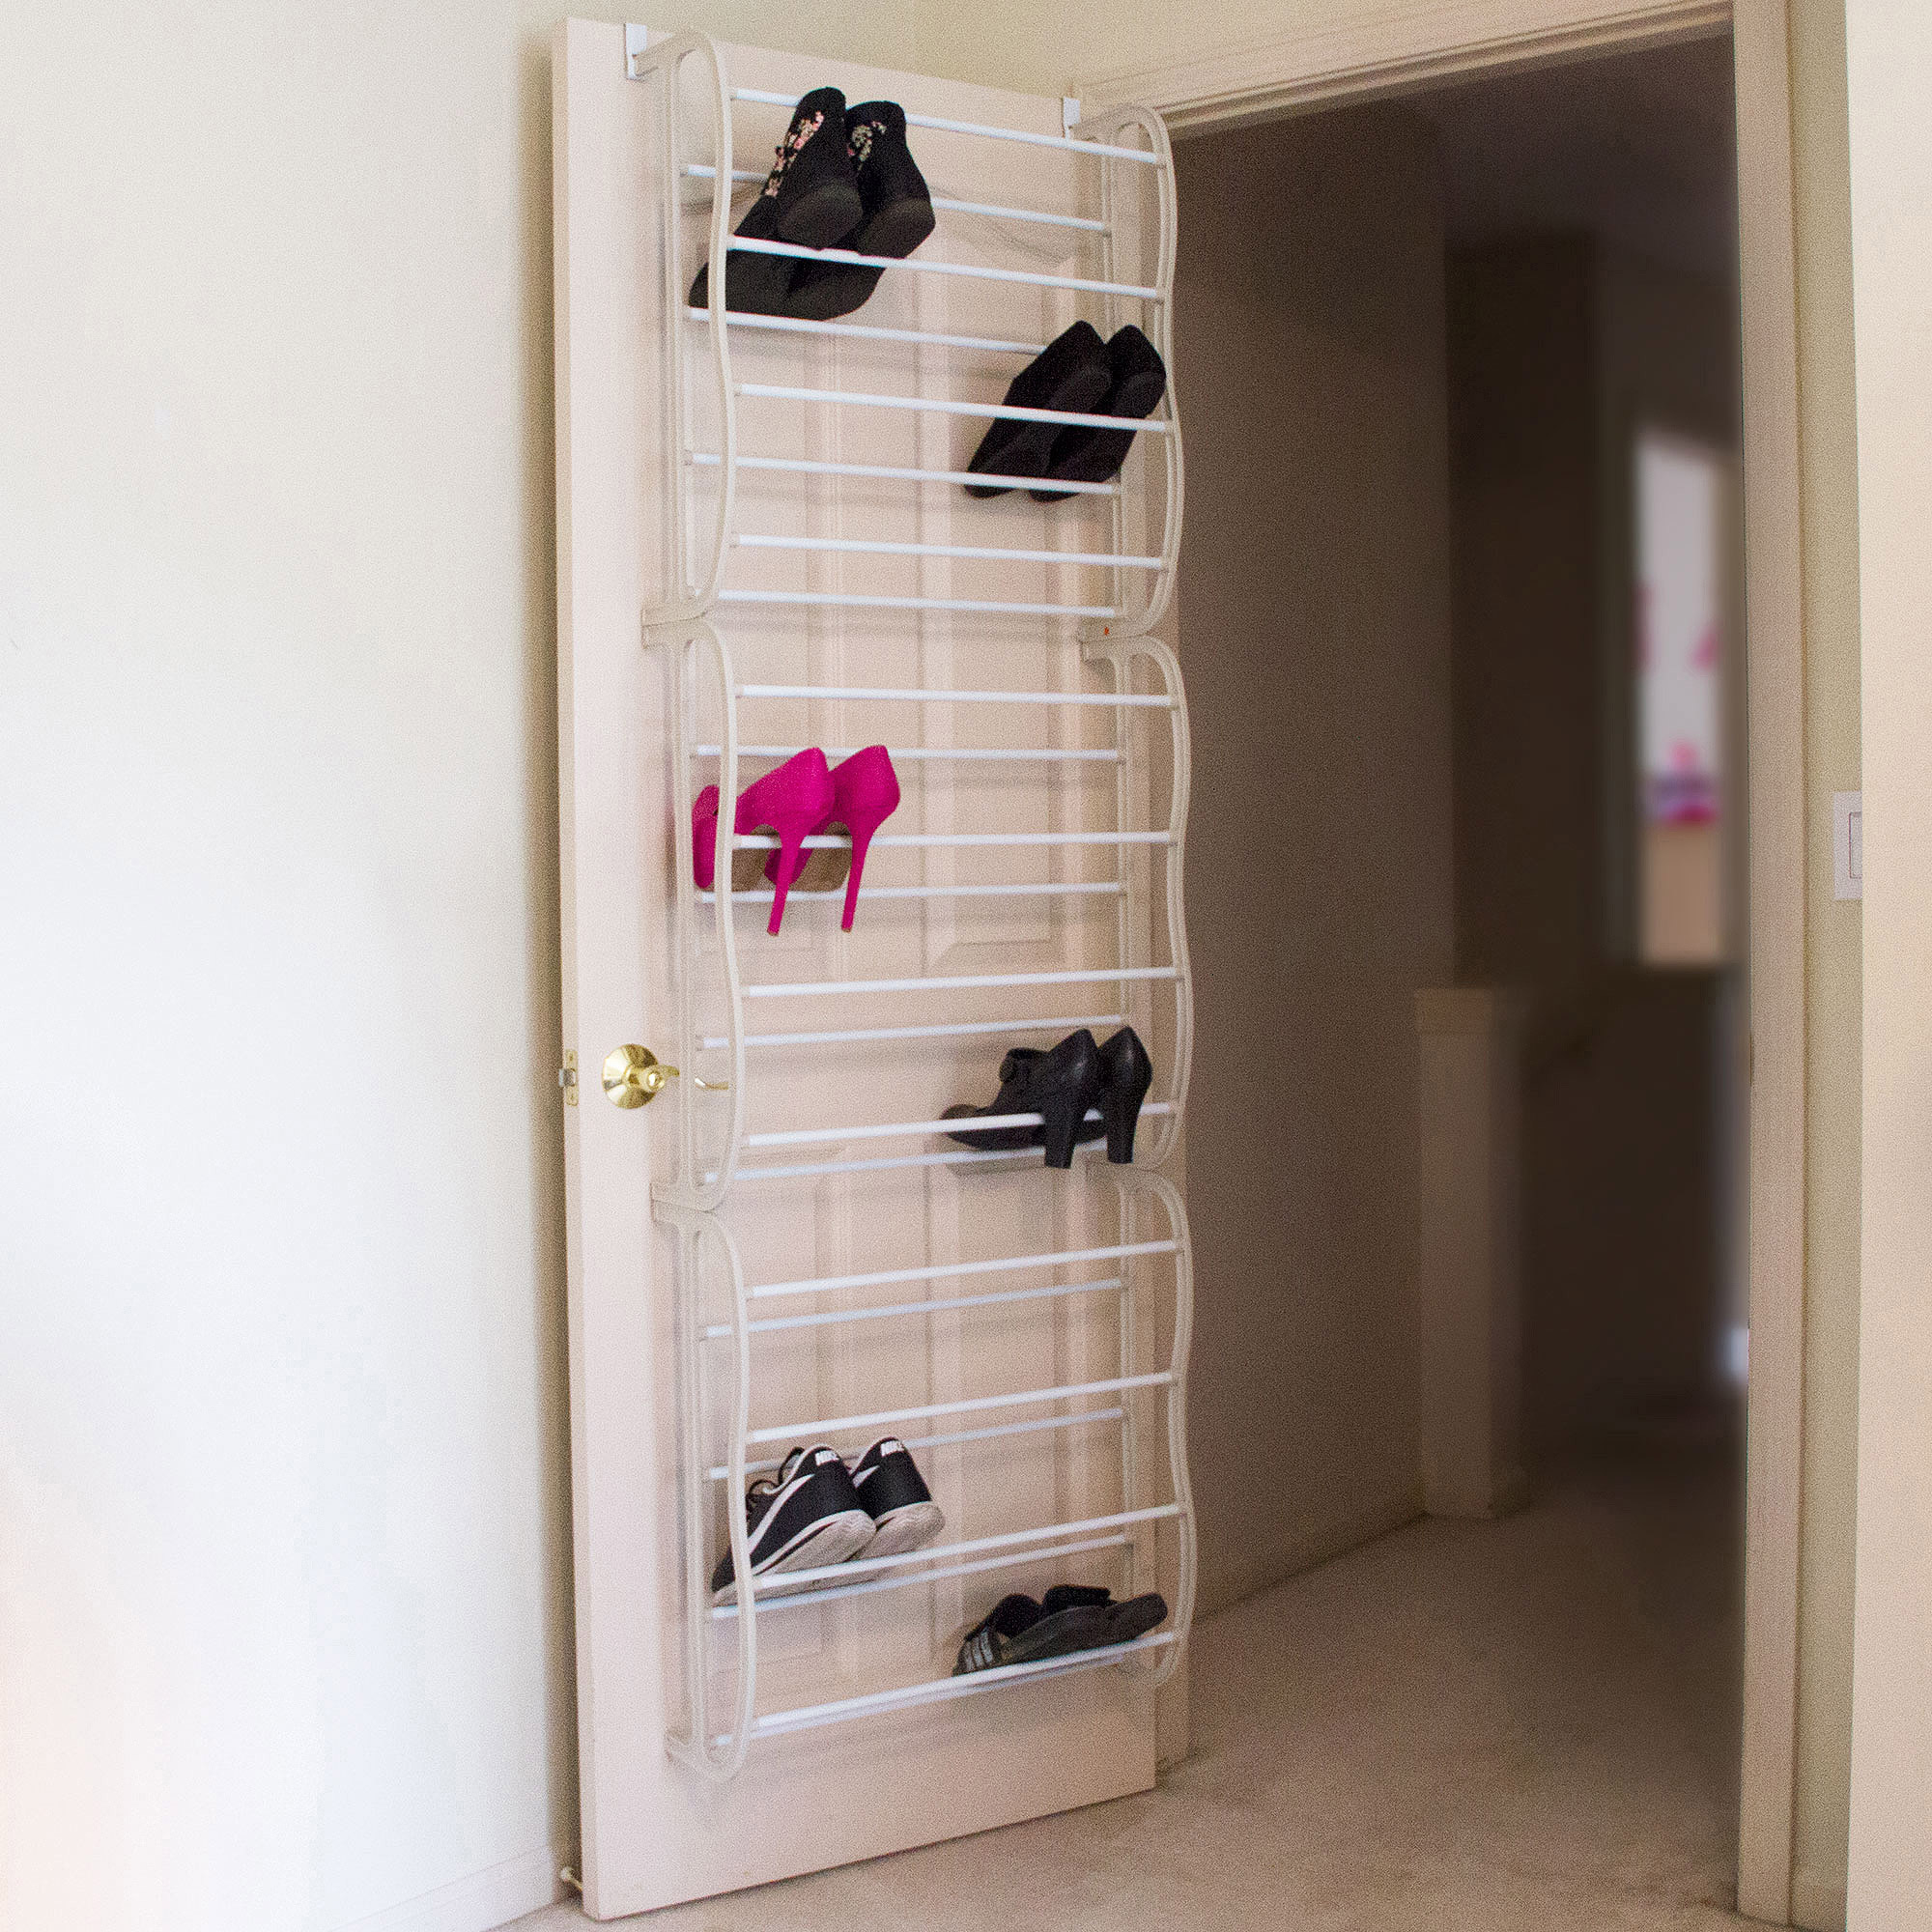 Lavish Home Over-the-Door Shoe Rack Organizer, Fits 36 Shoes